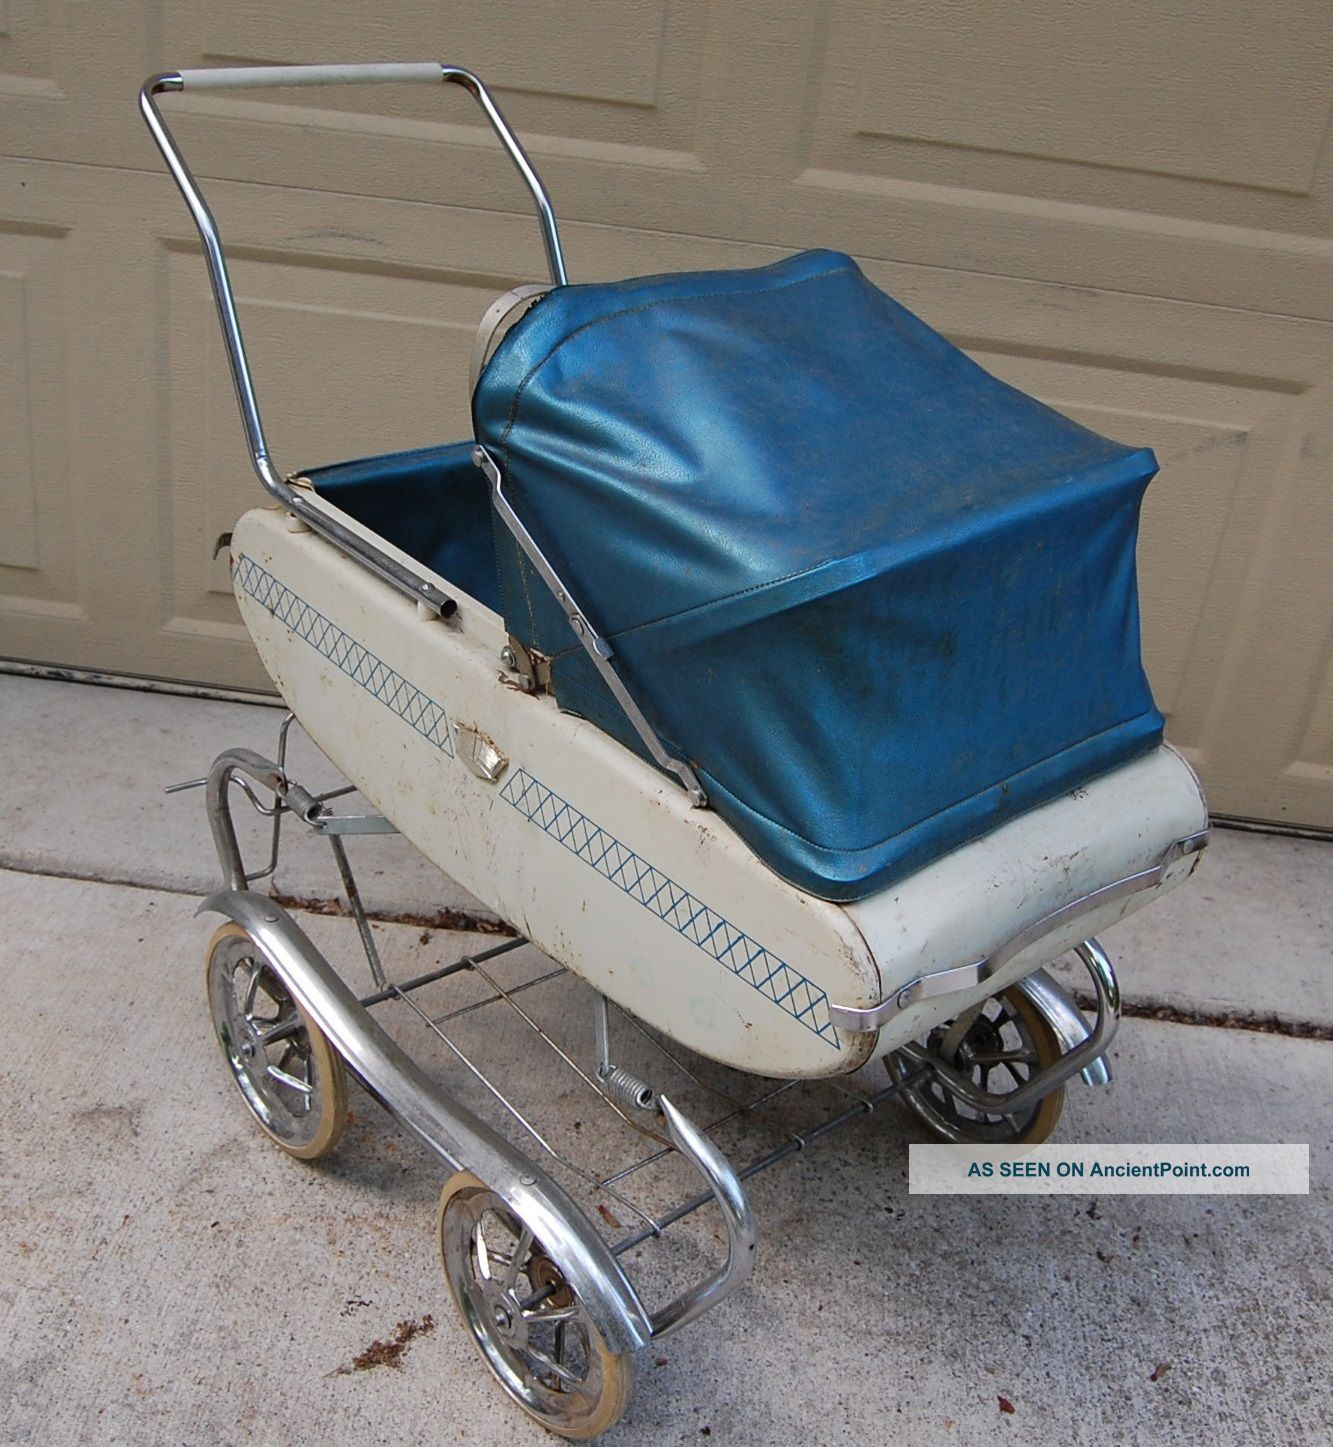 Vintage Metal Bumper Baby Carriage Stroller,  Chrome Fenders,  Spring Suspension Baby Carriages & Buggies photo